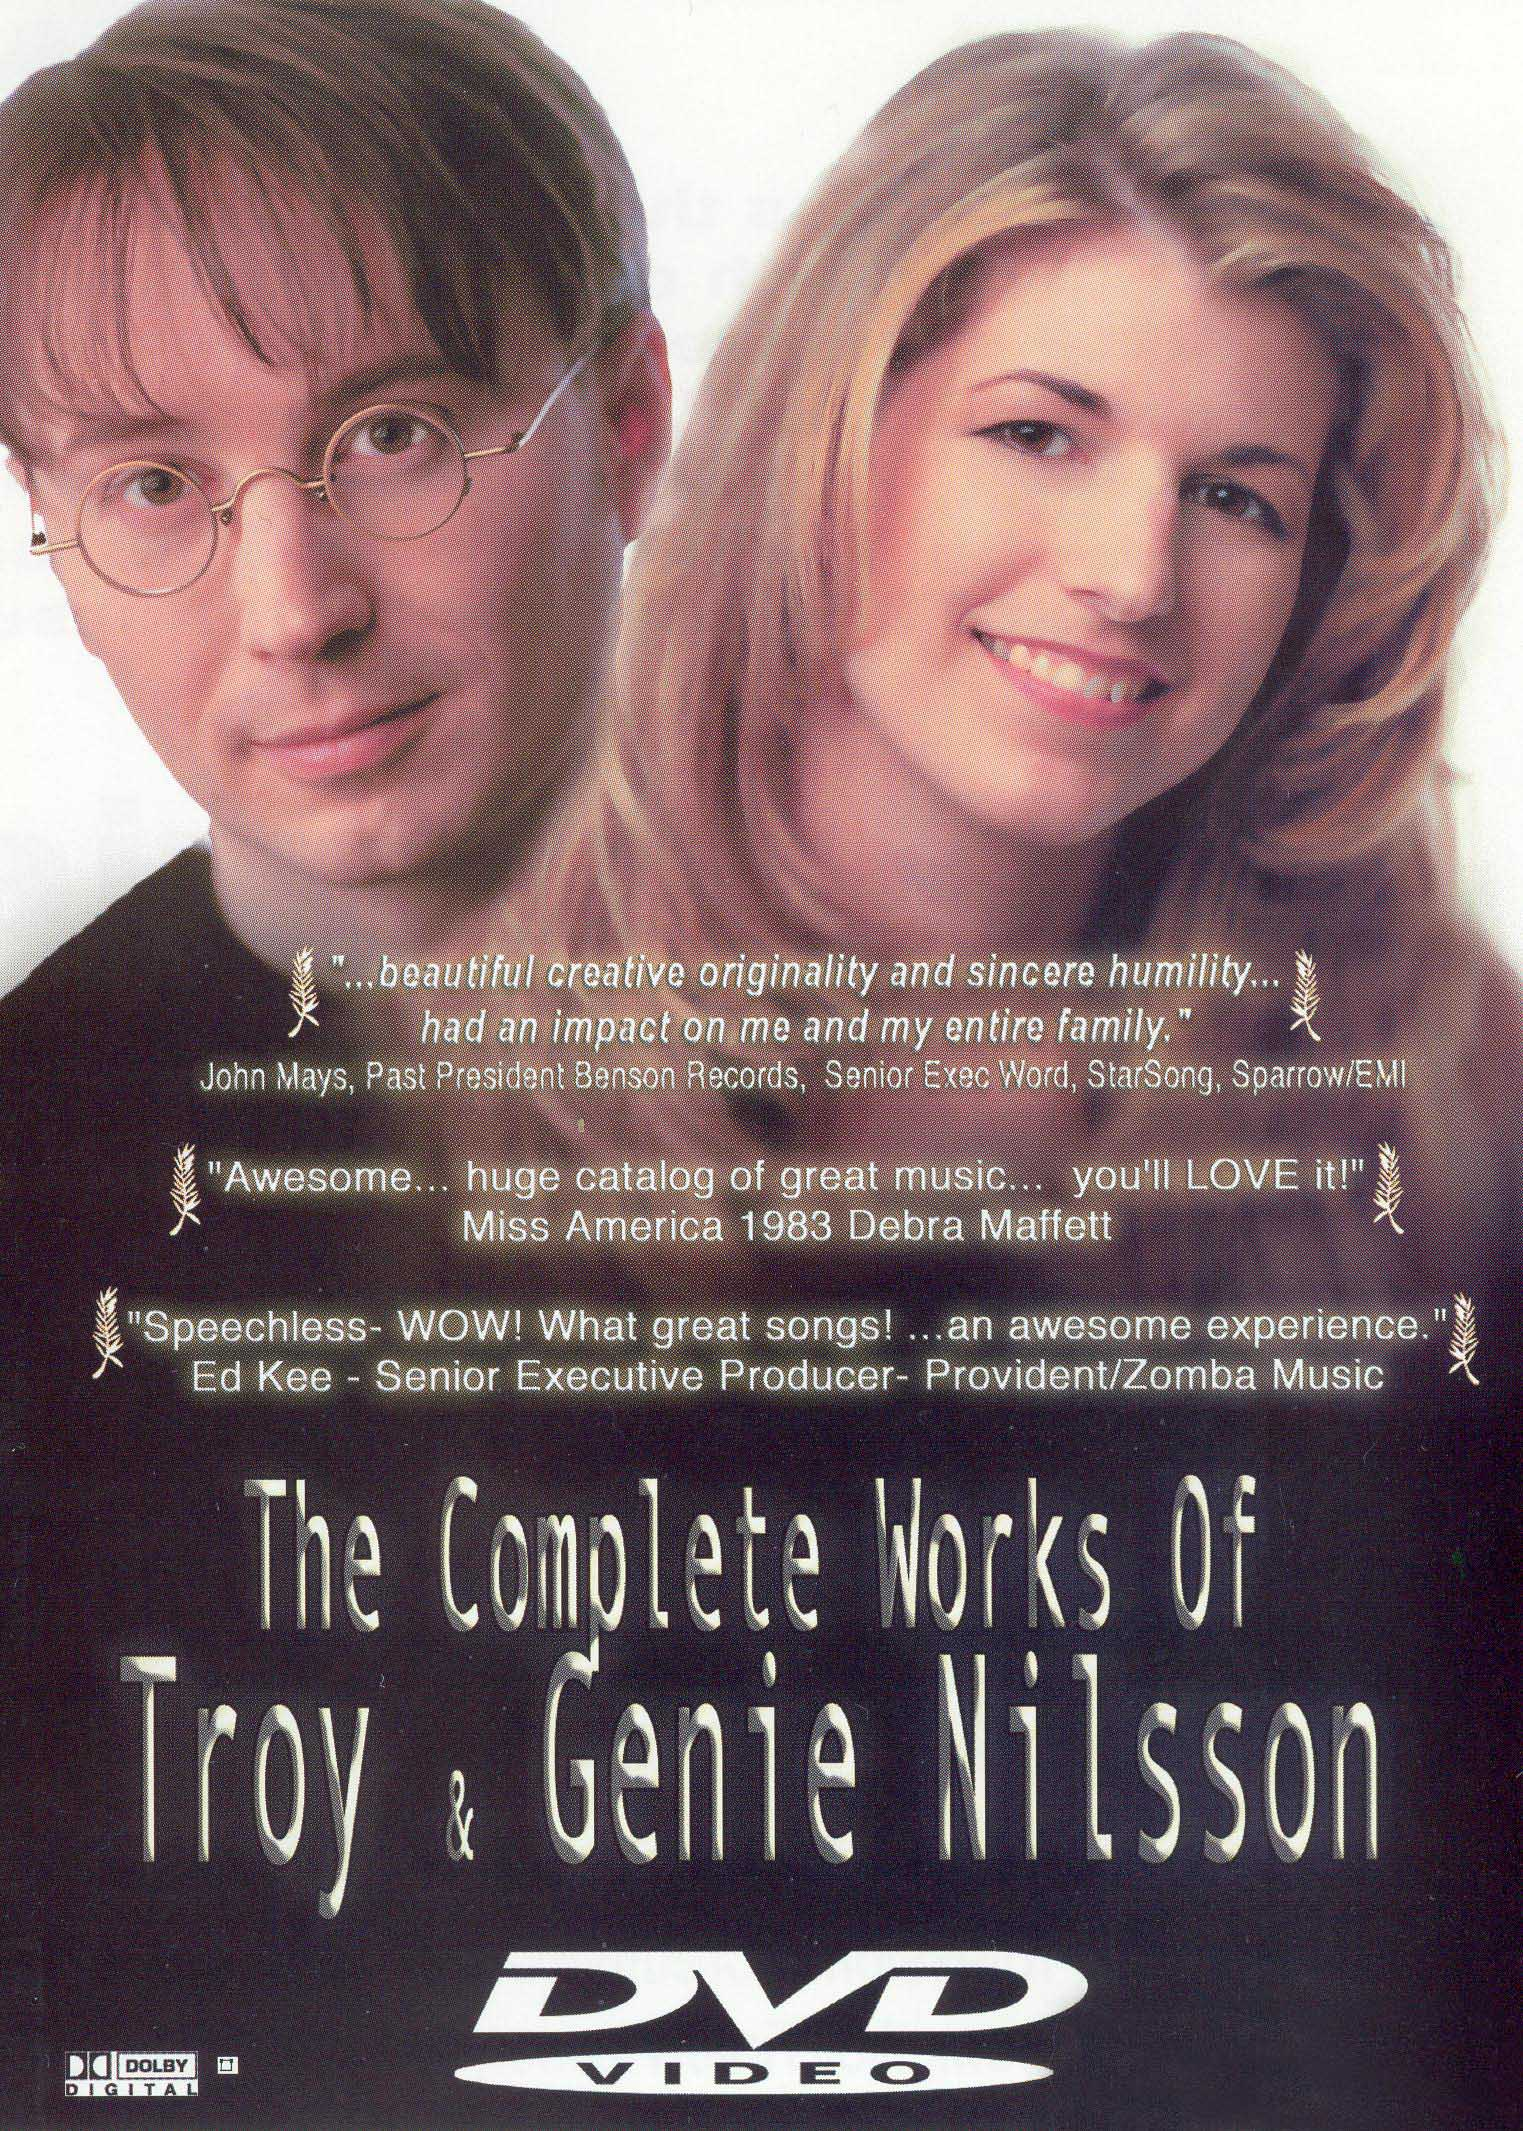 Troy & Genie Nilsson: The Complete Works of Troy & Genie Nilsson